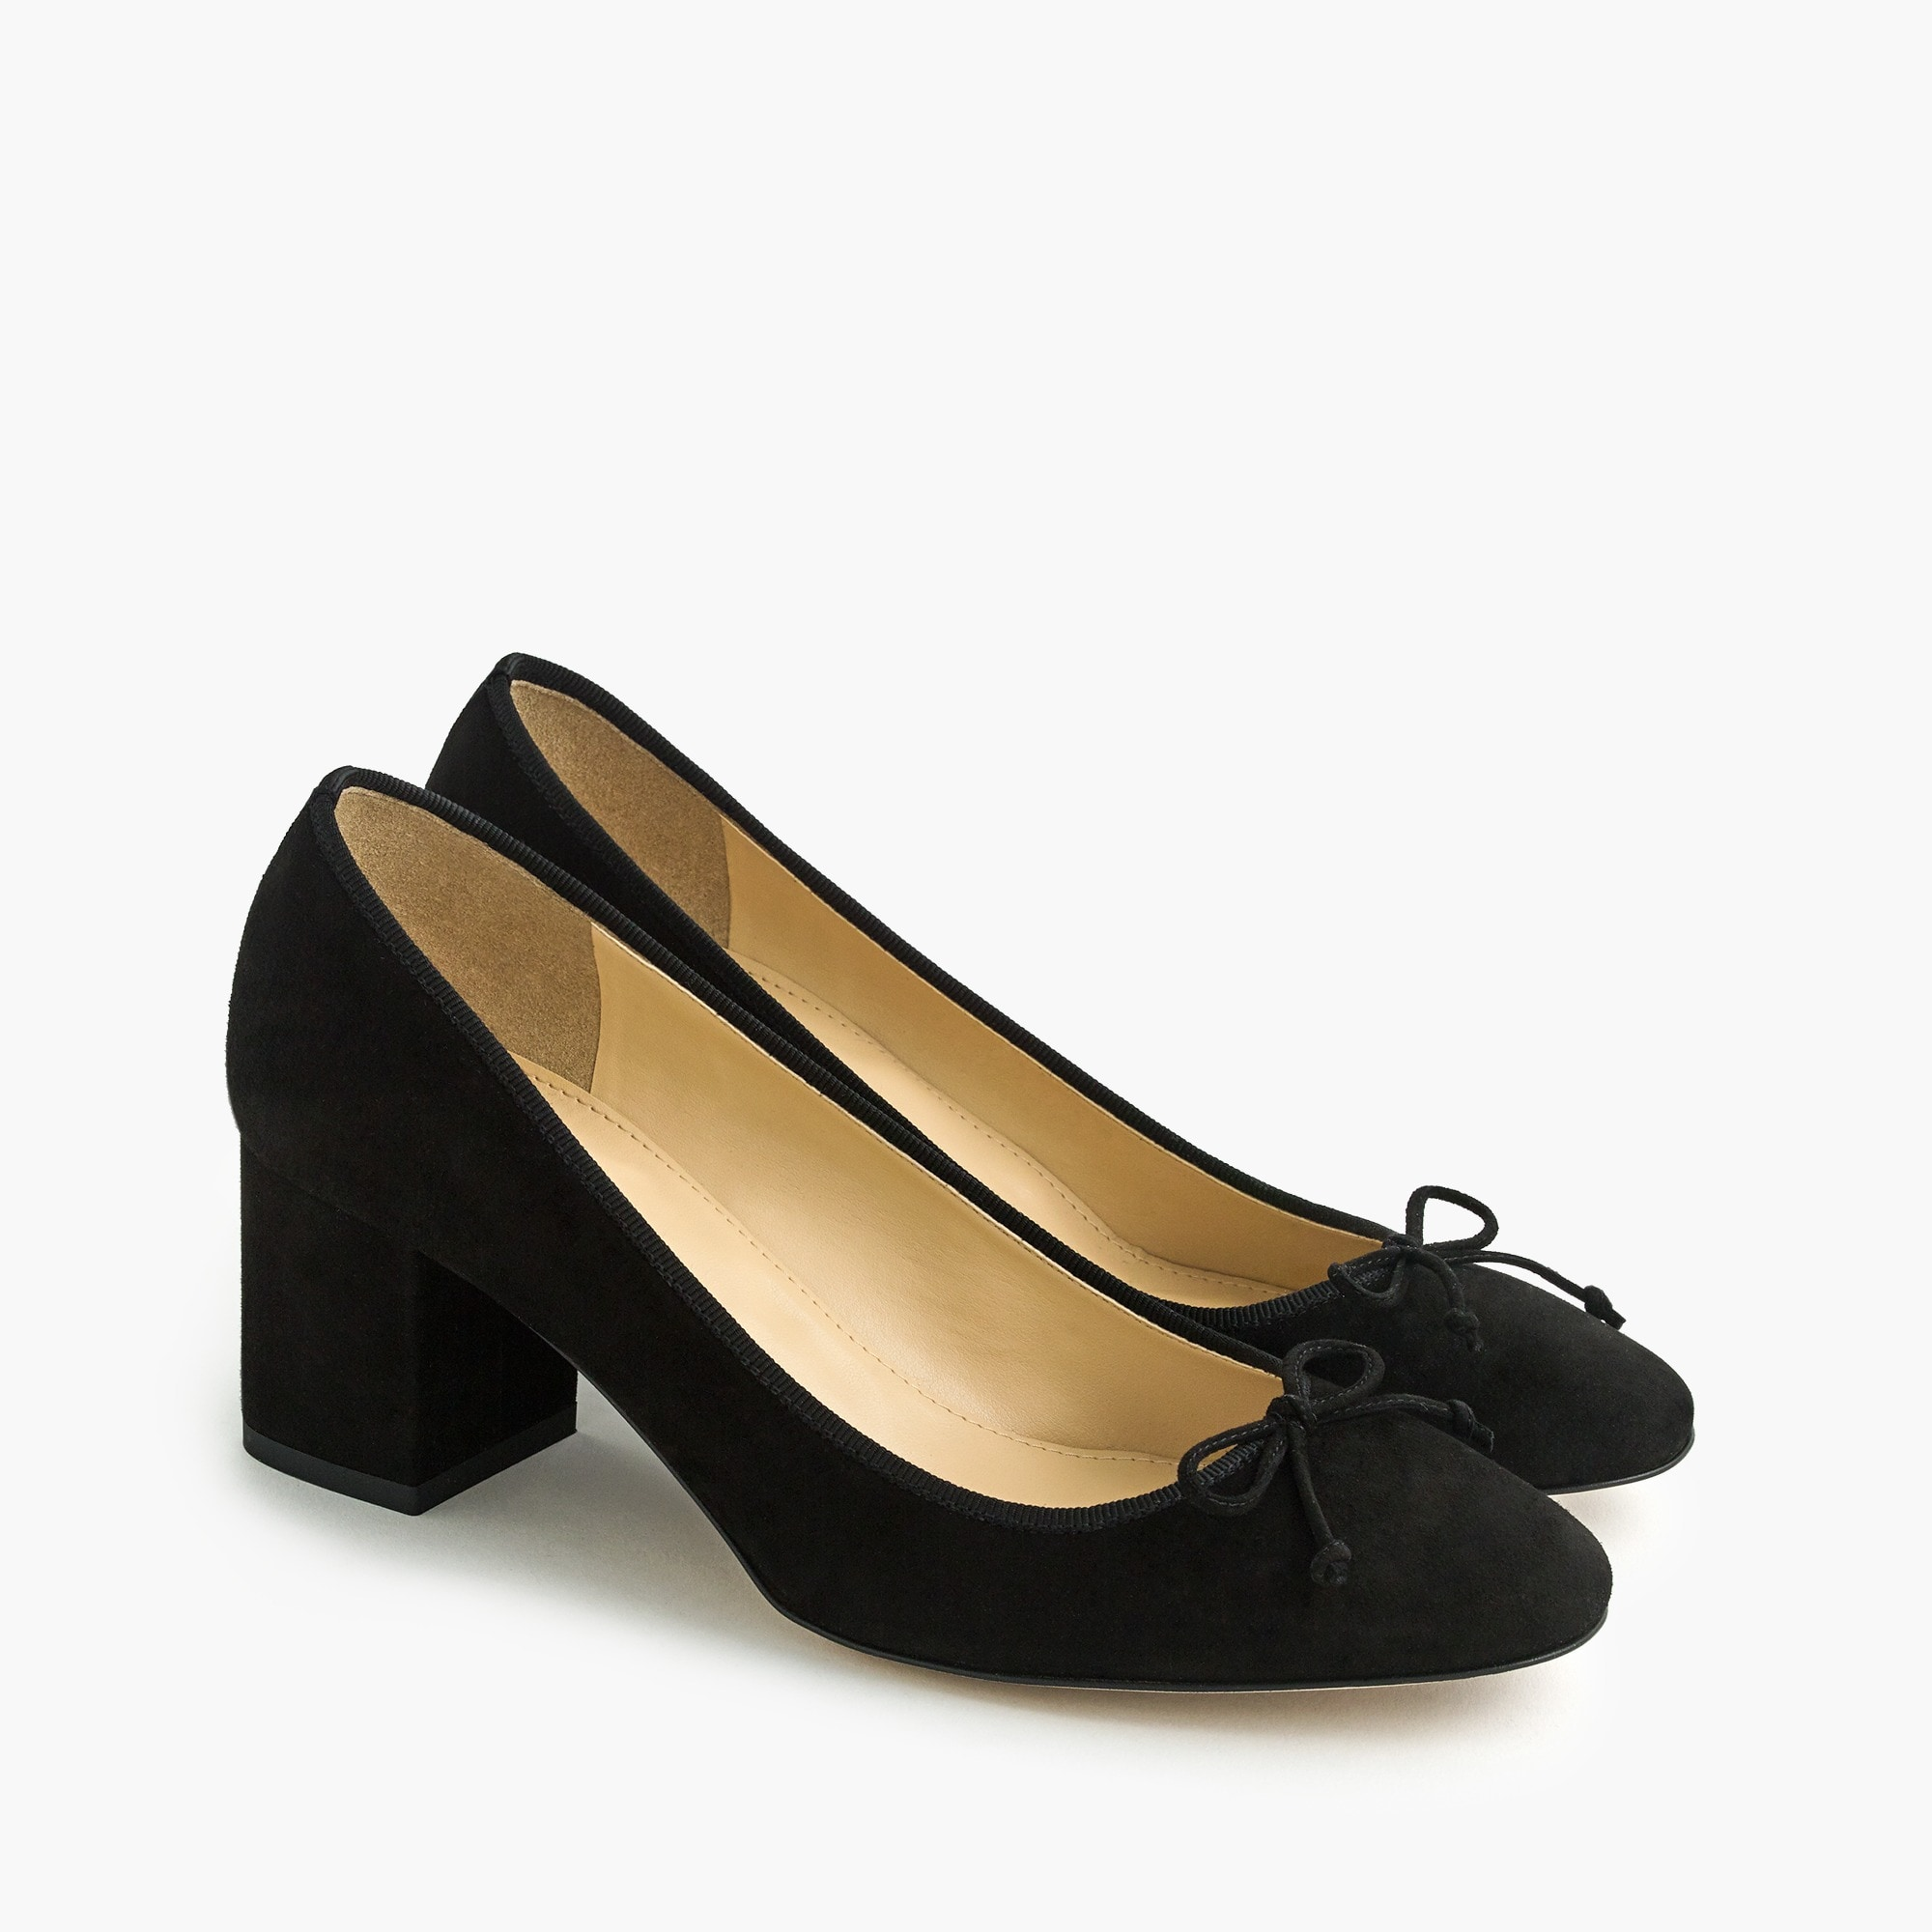 Image 3 for Evie ballet heel in black suede